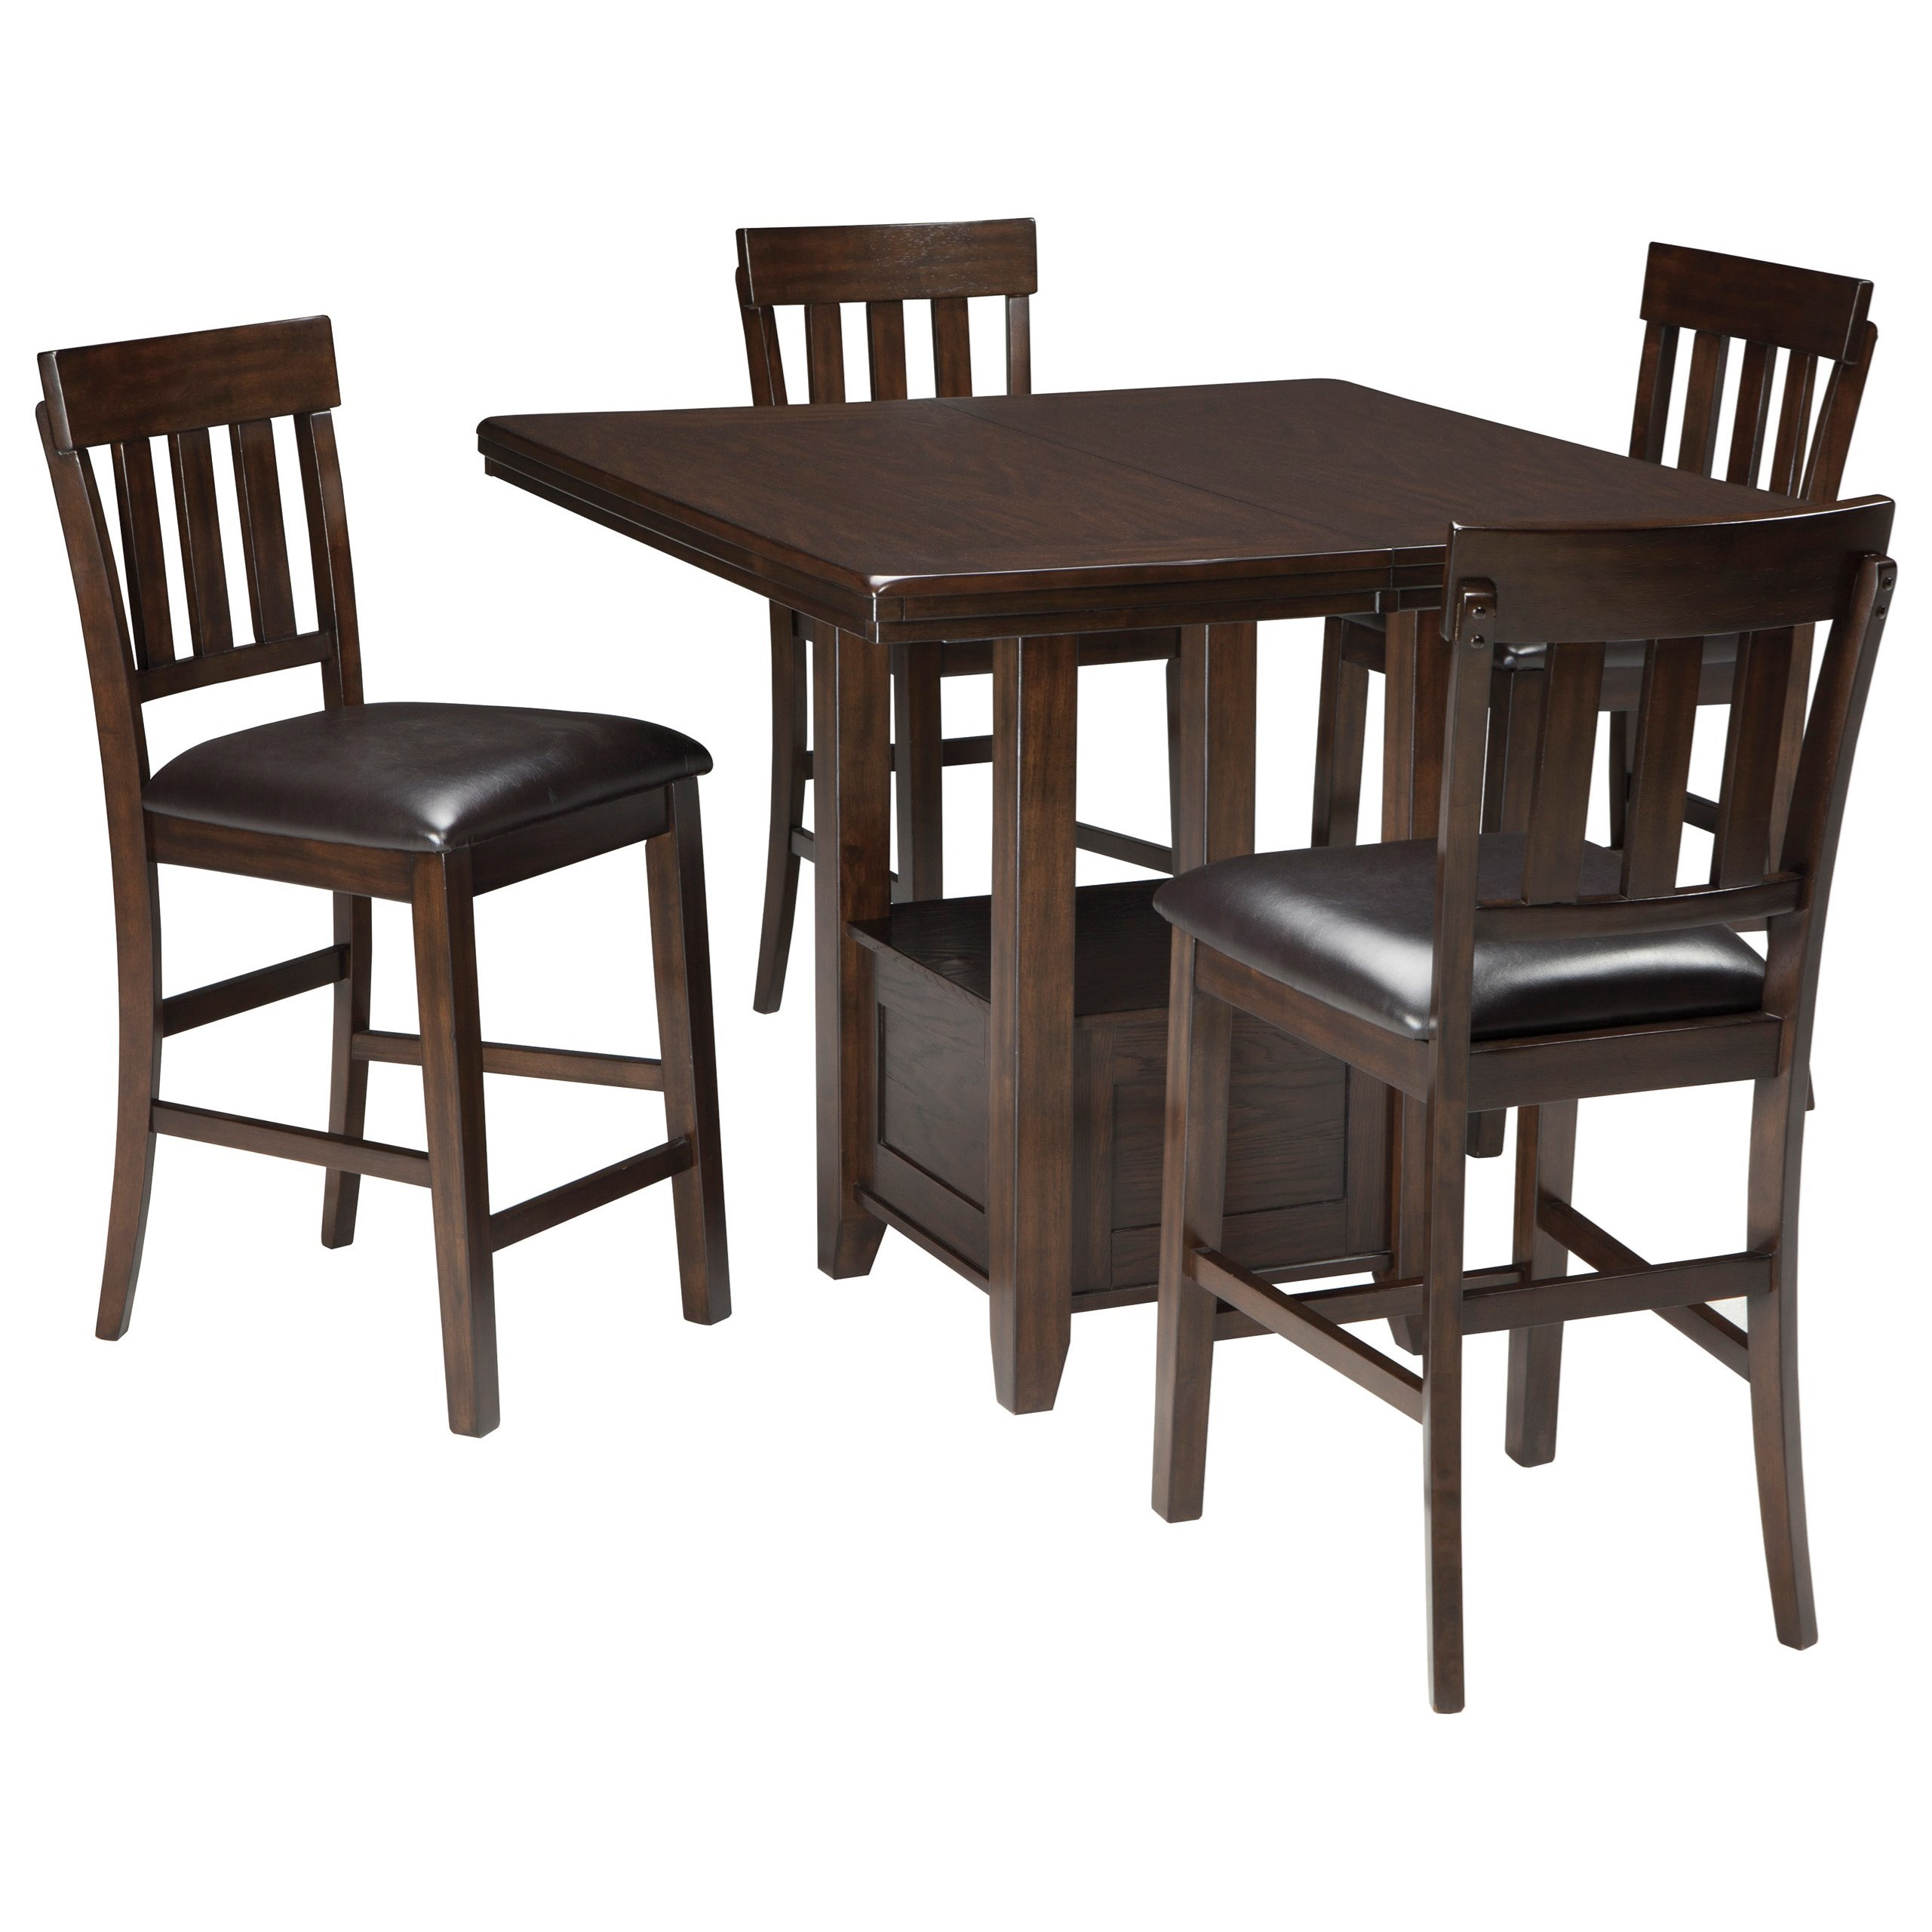 Table Ashley Signature Design By Ashley Haddigan 5 Piece Dining Room